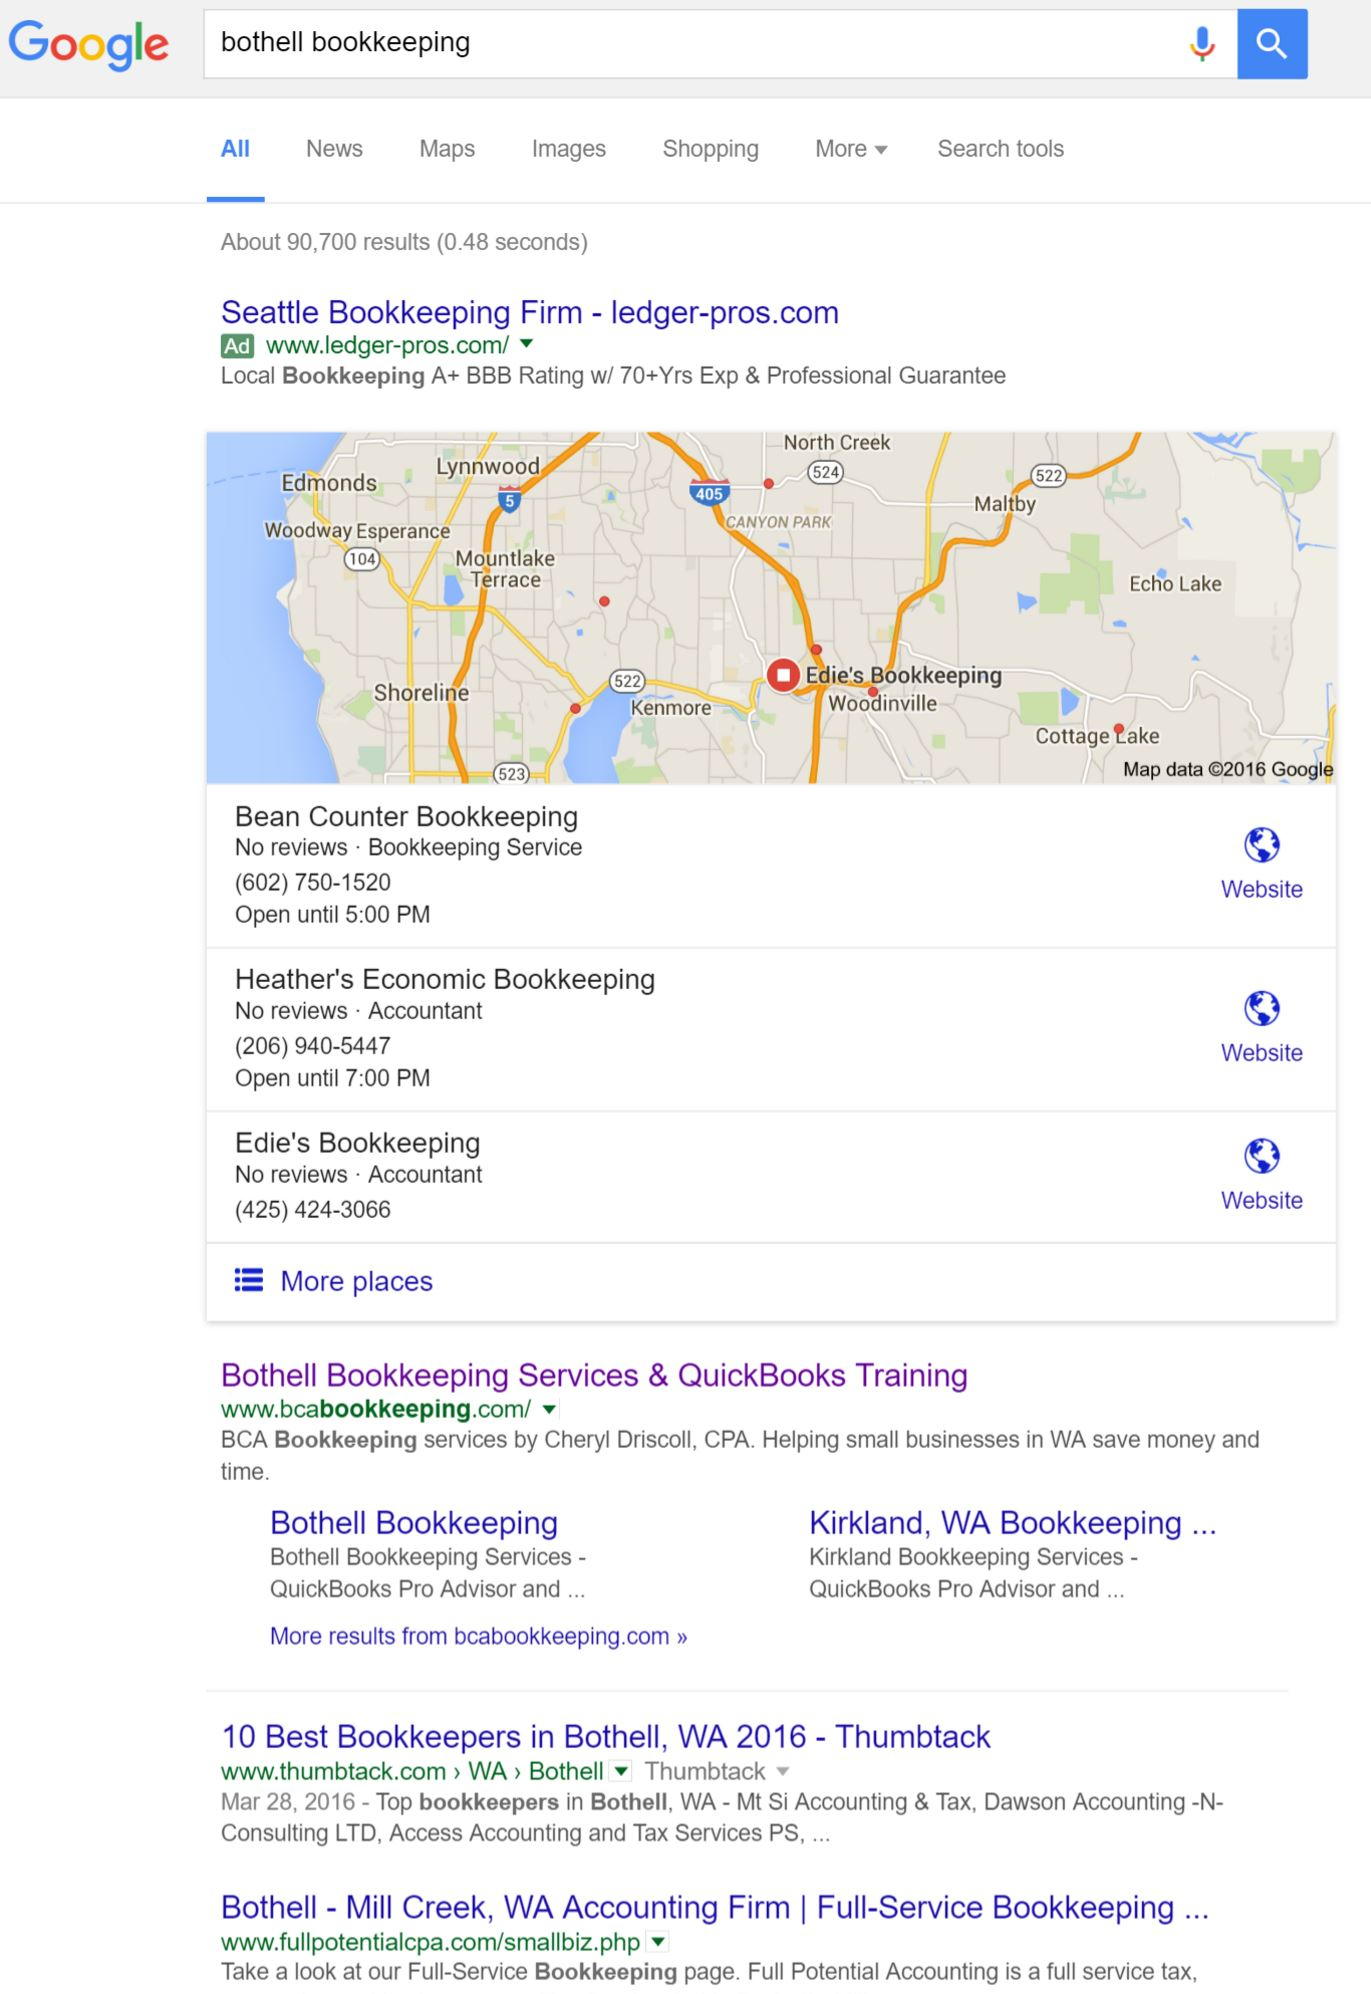 Bothell Bookkeeping on Google